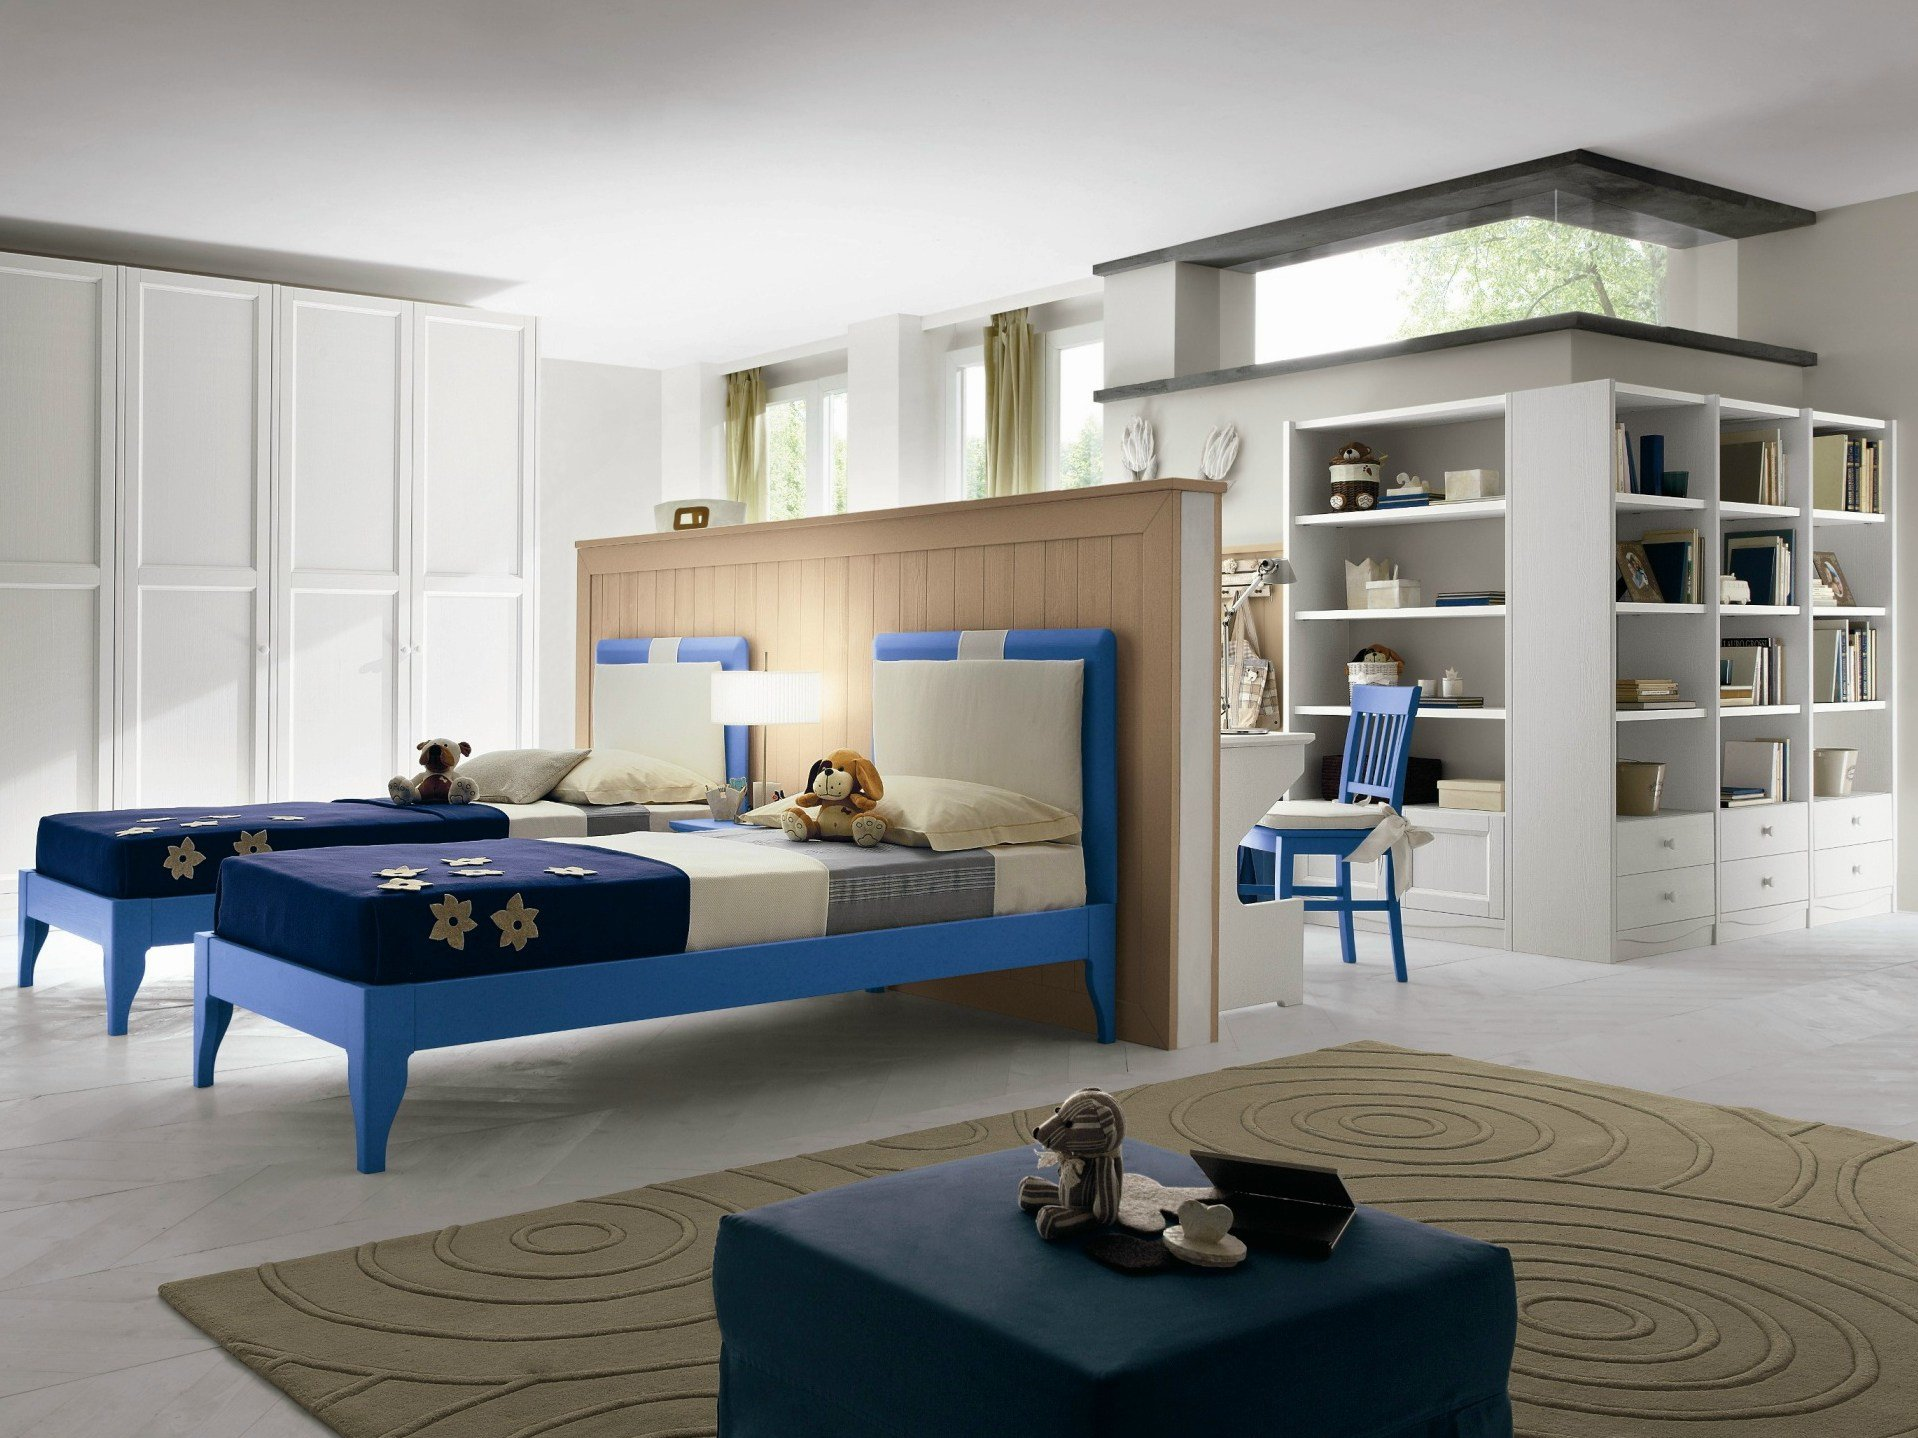 Best Wooden Teenage Bedroom Every Day Night Composition 15 By With Pictures